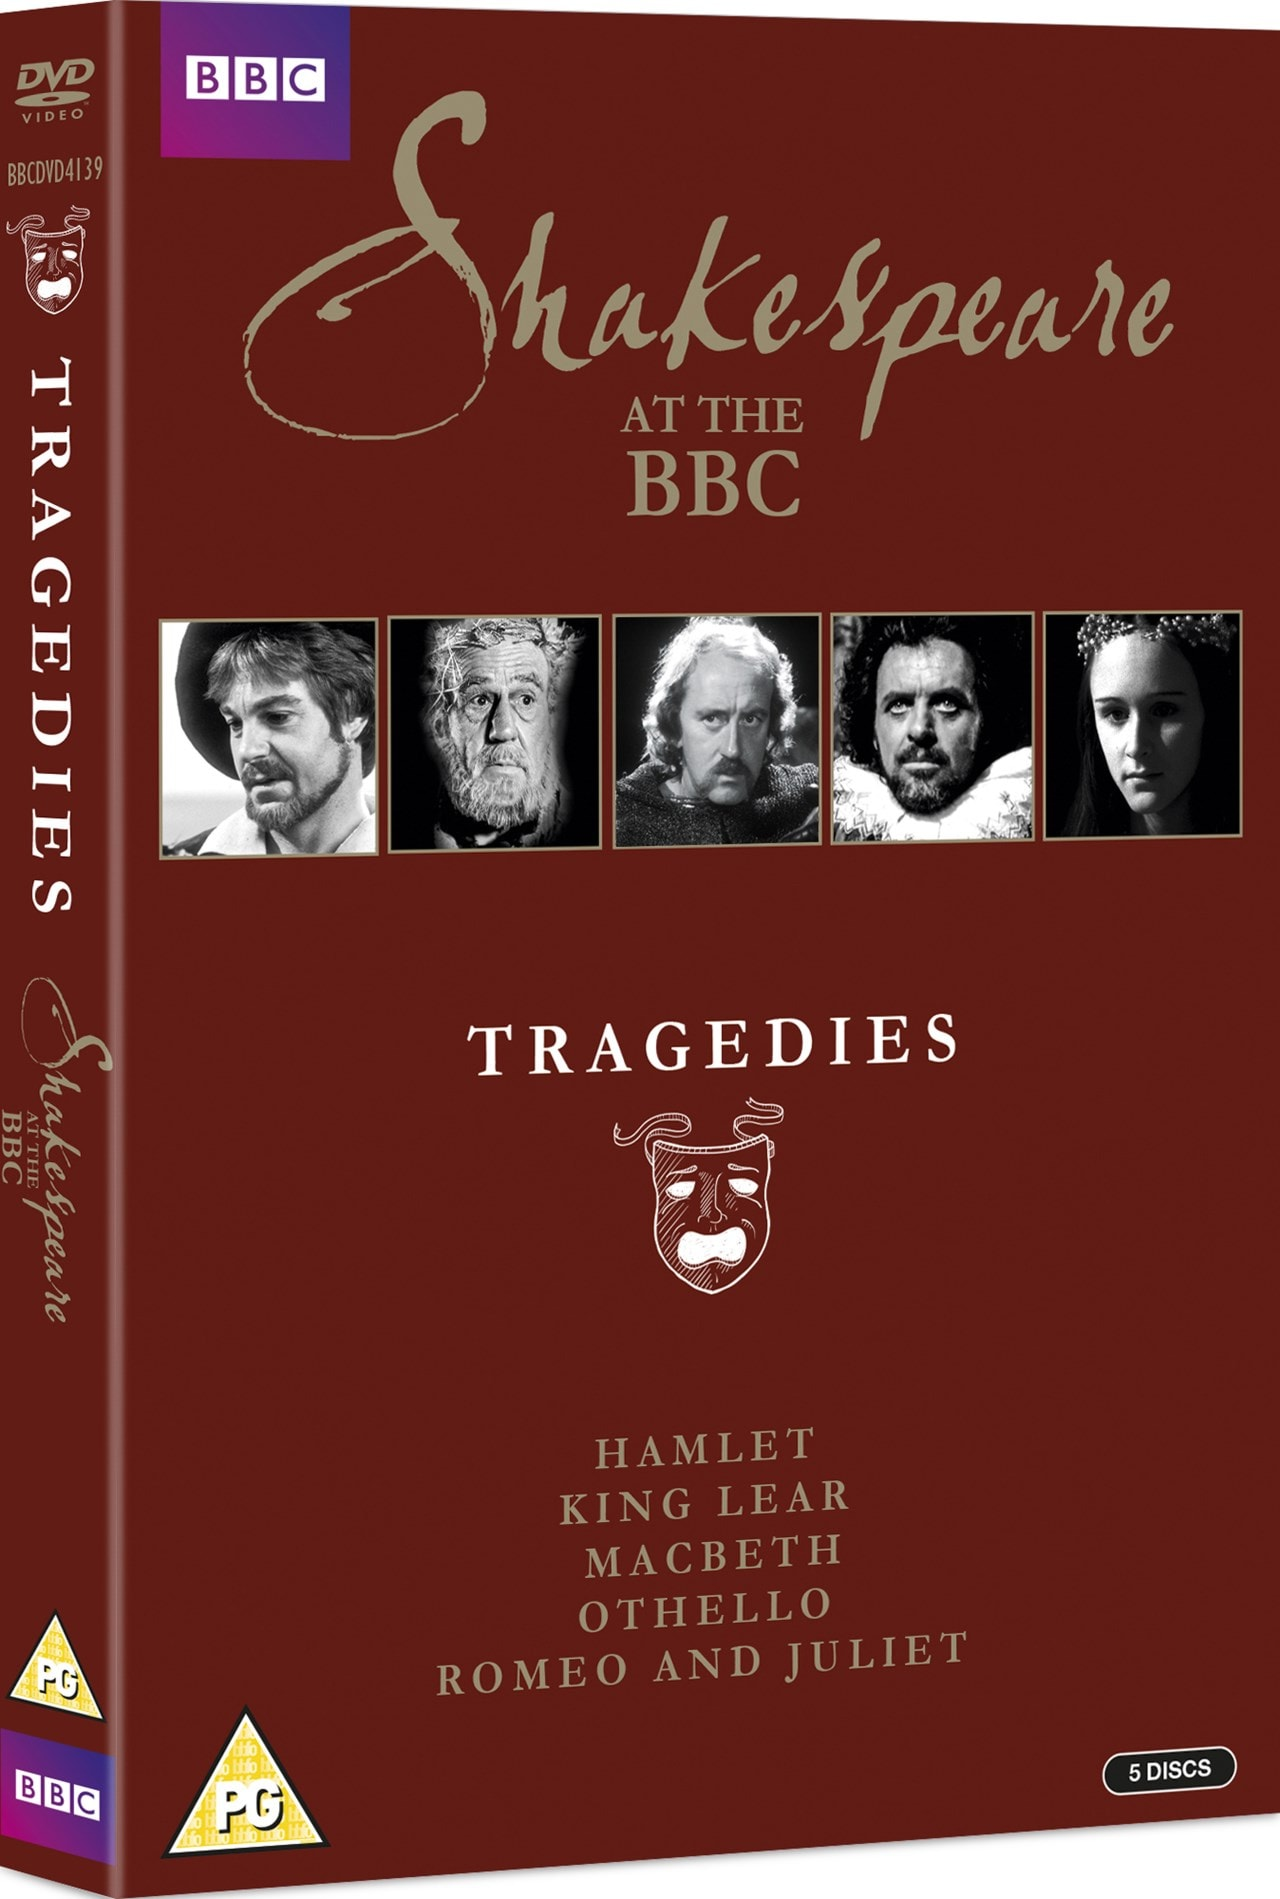 Shakespeare at the BBC: Tragedies - 2